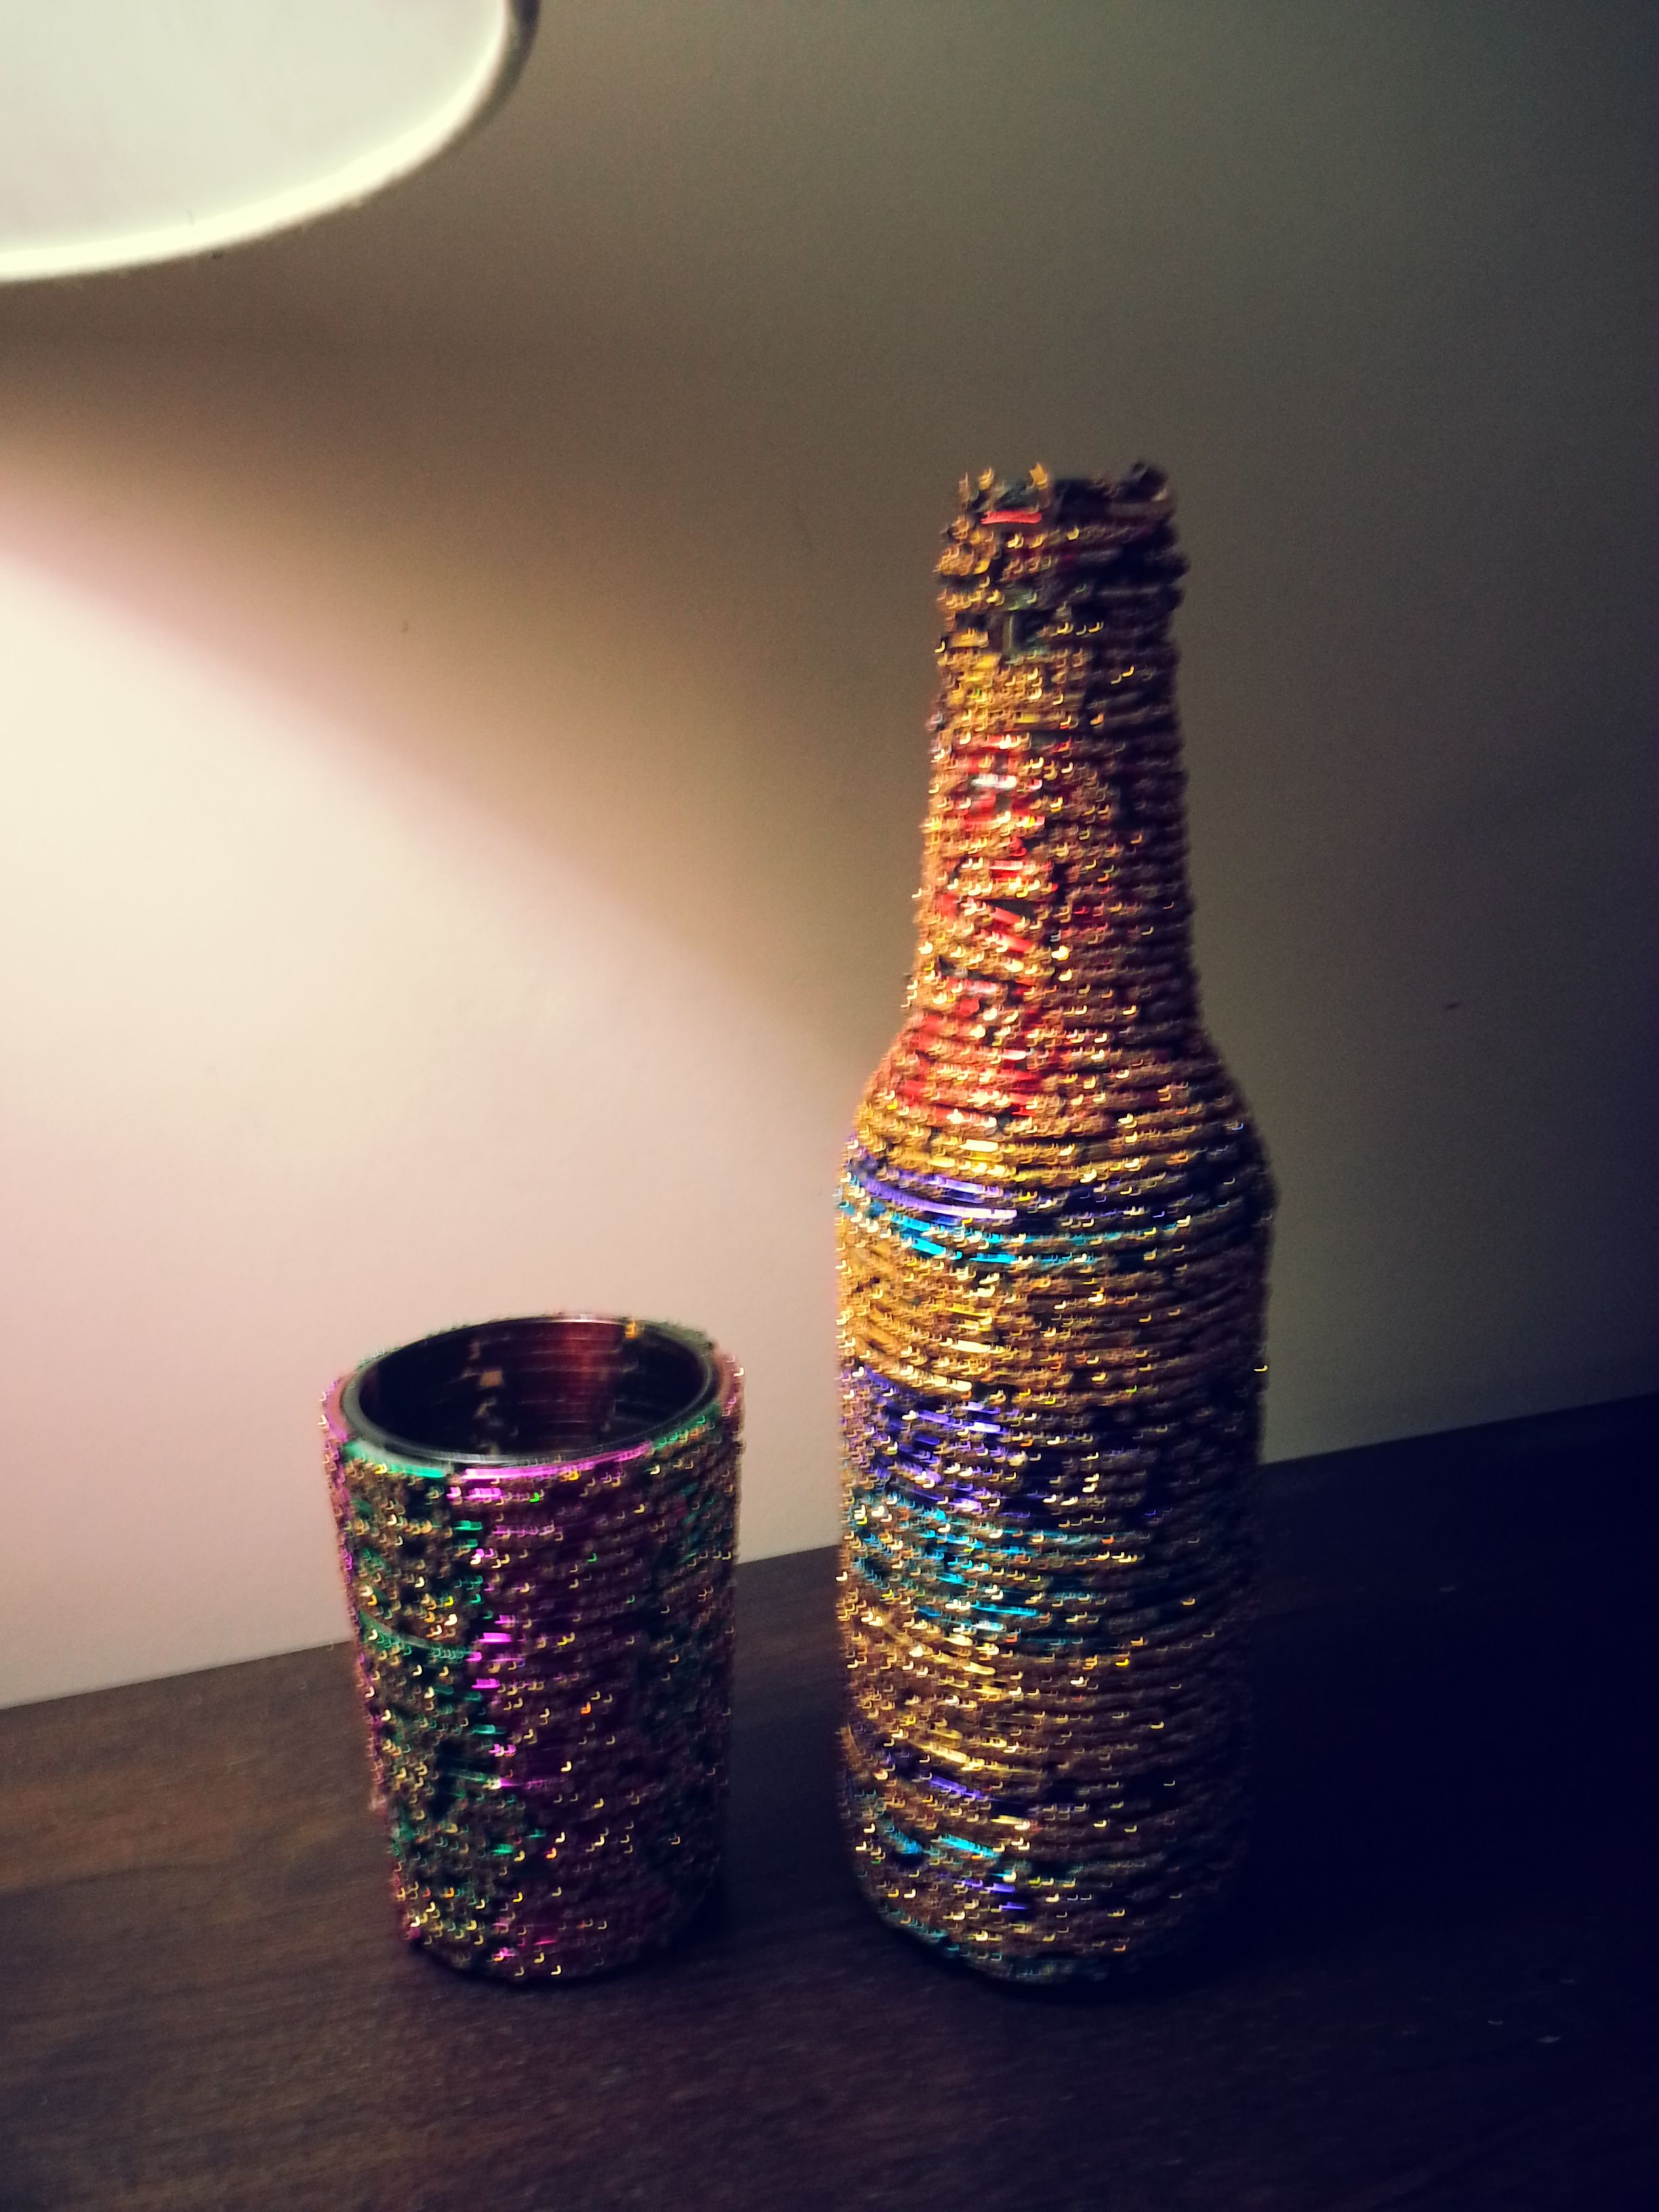 9 waste bangles art ideas activity for joy pinterest for Best use of waste